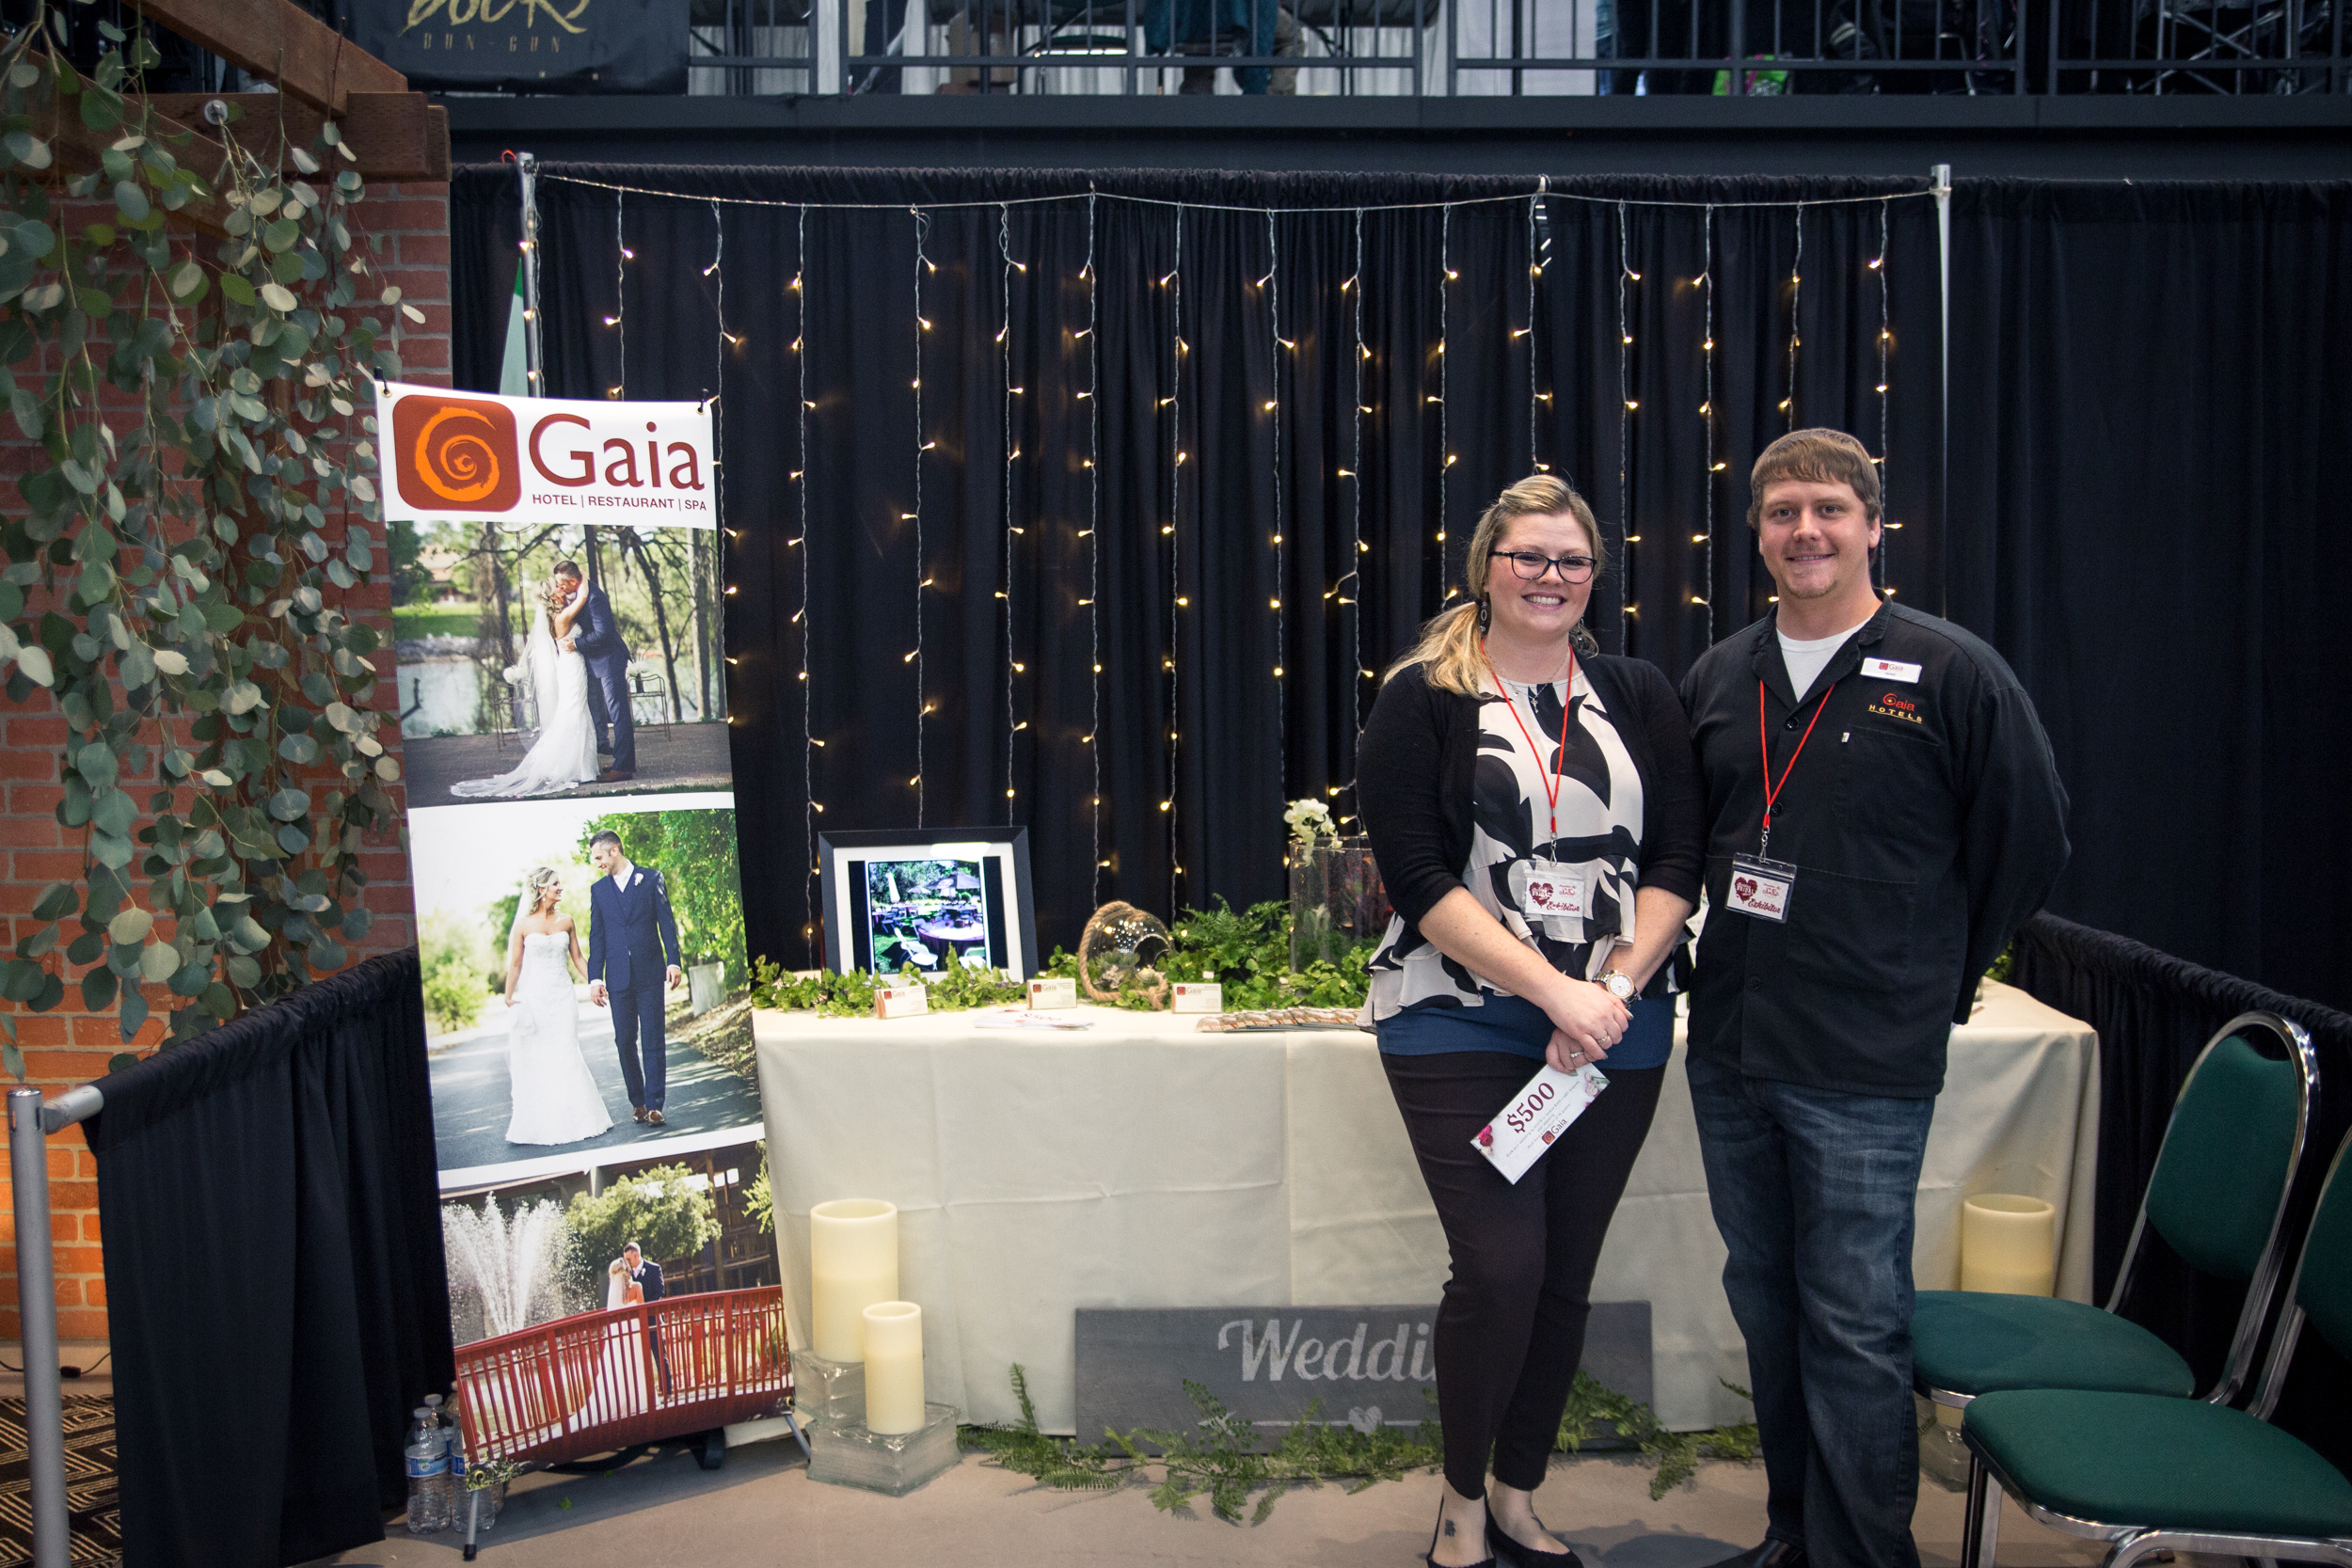 Gaia Hotel and Spa Redding Bridal Show Wedding Expo